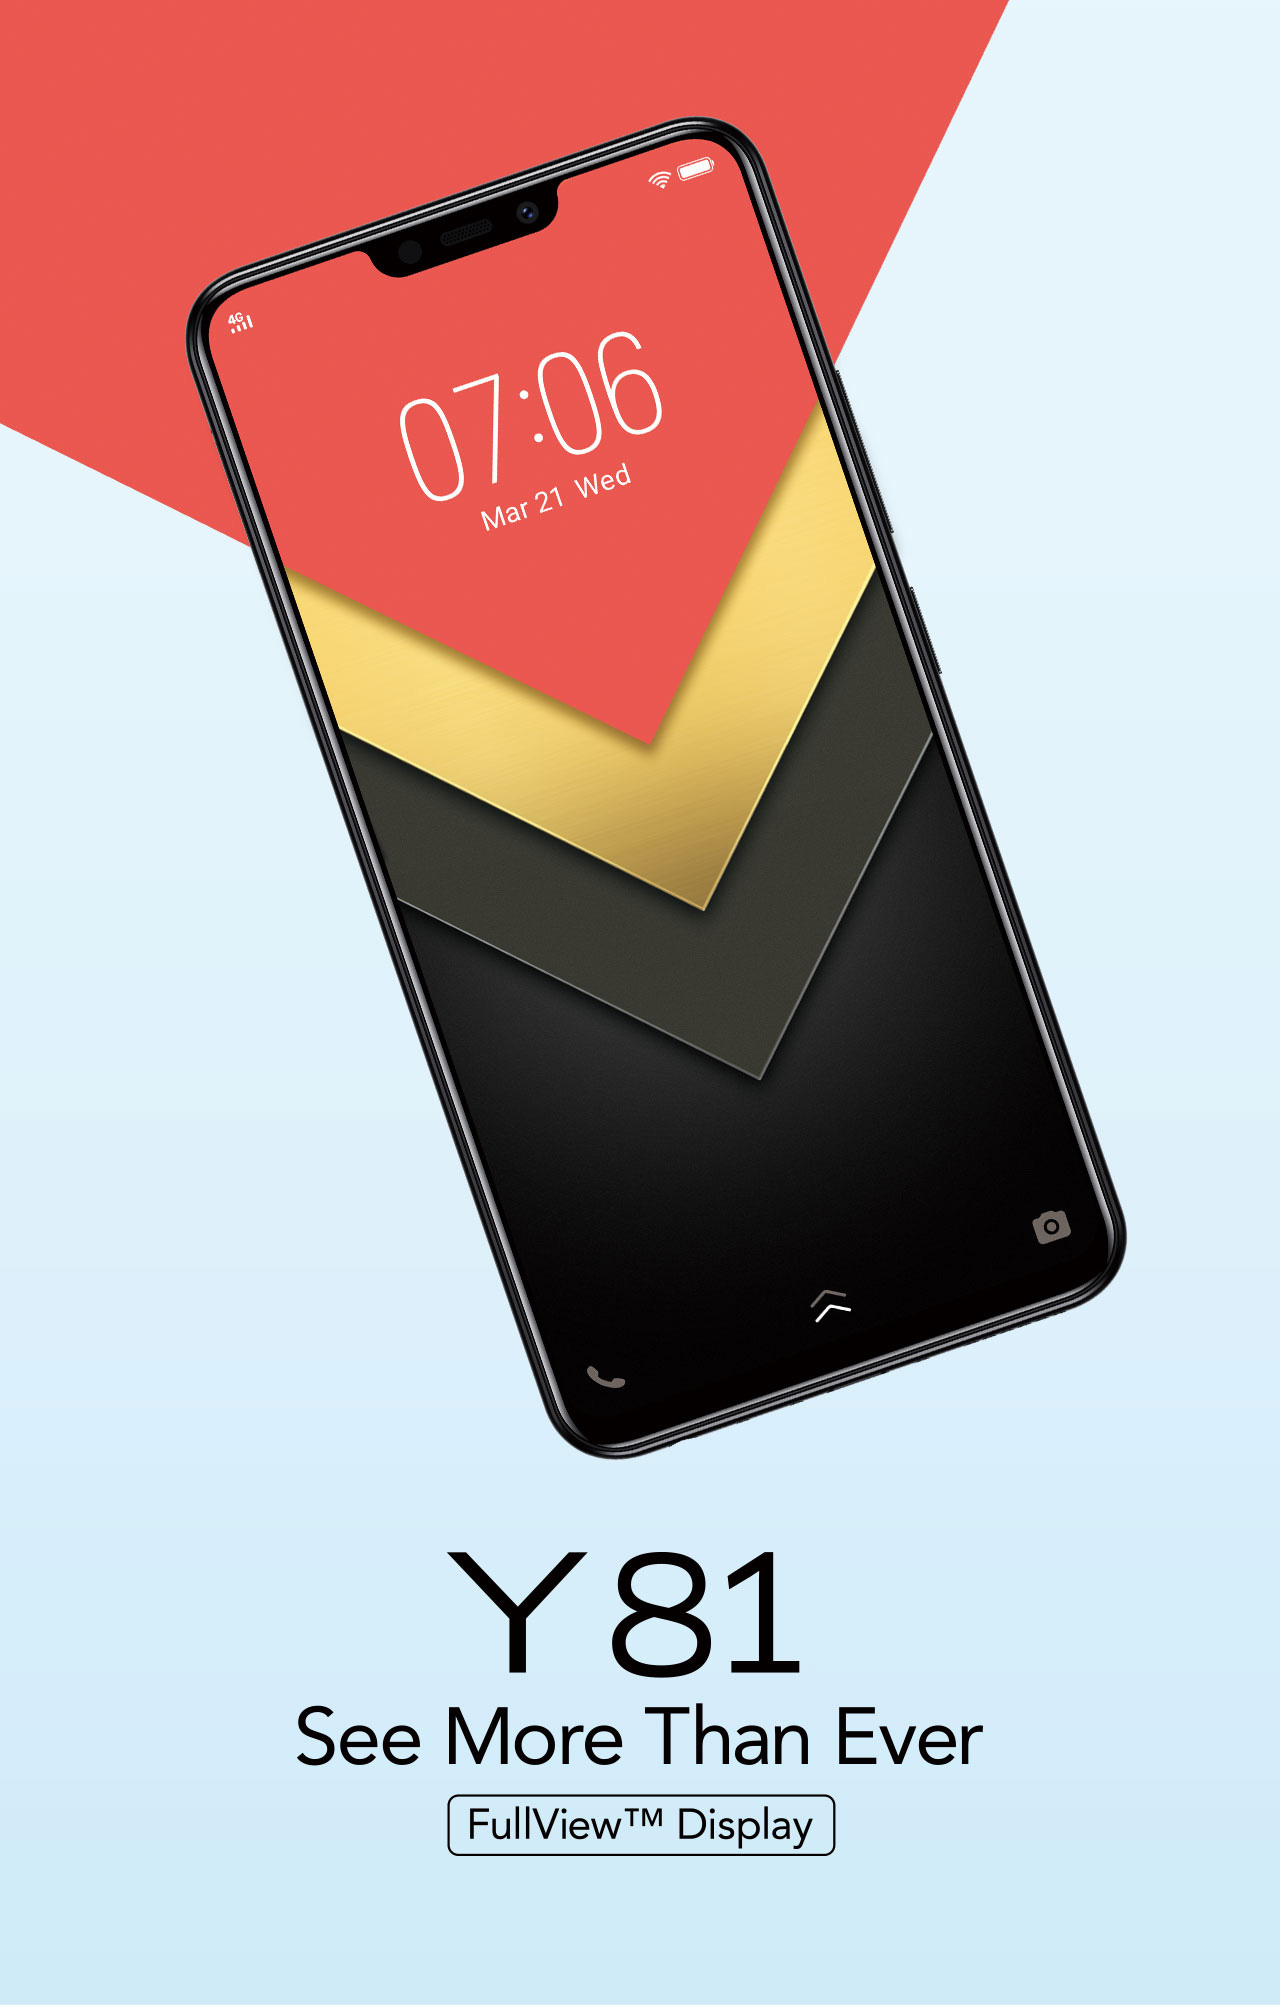 Vivo Y81 | Vivo Indonesia